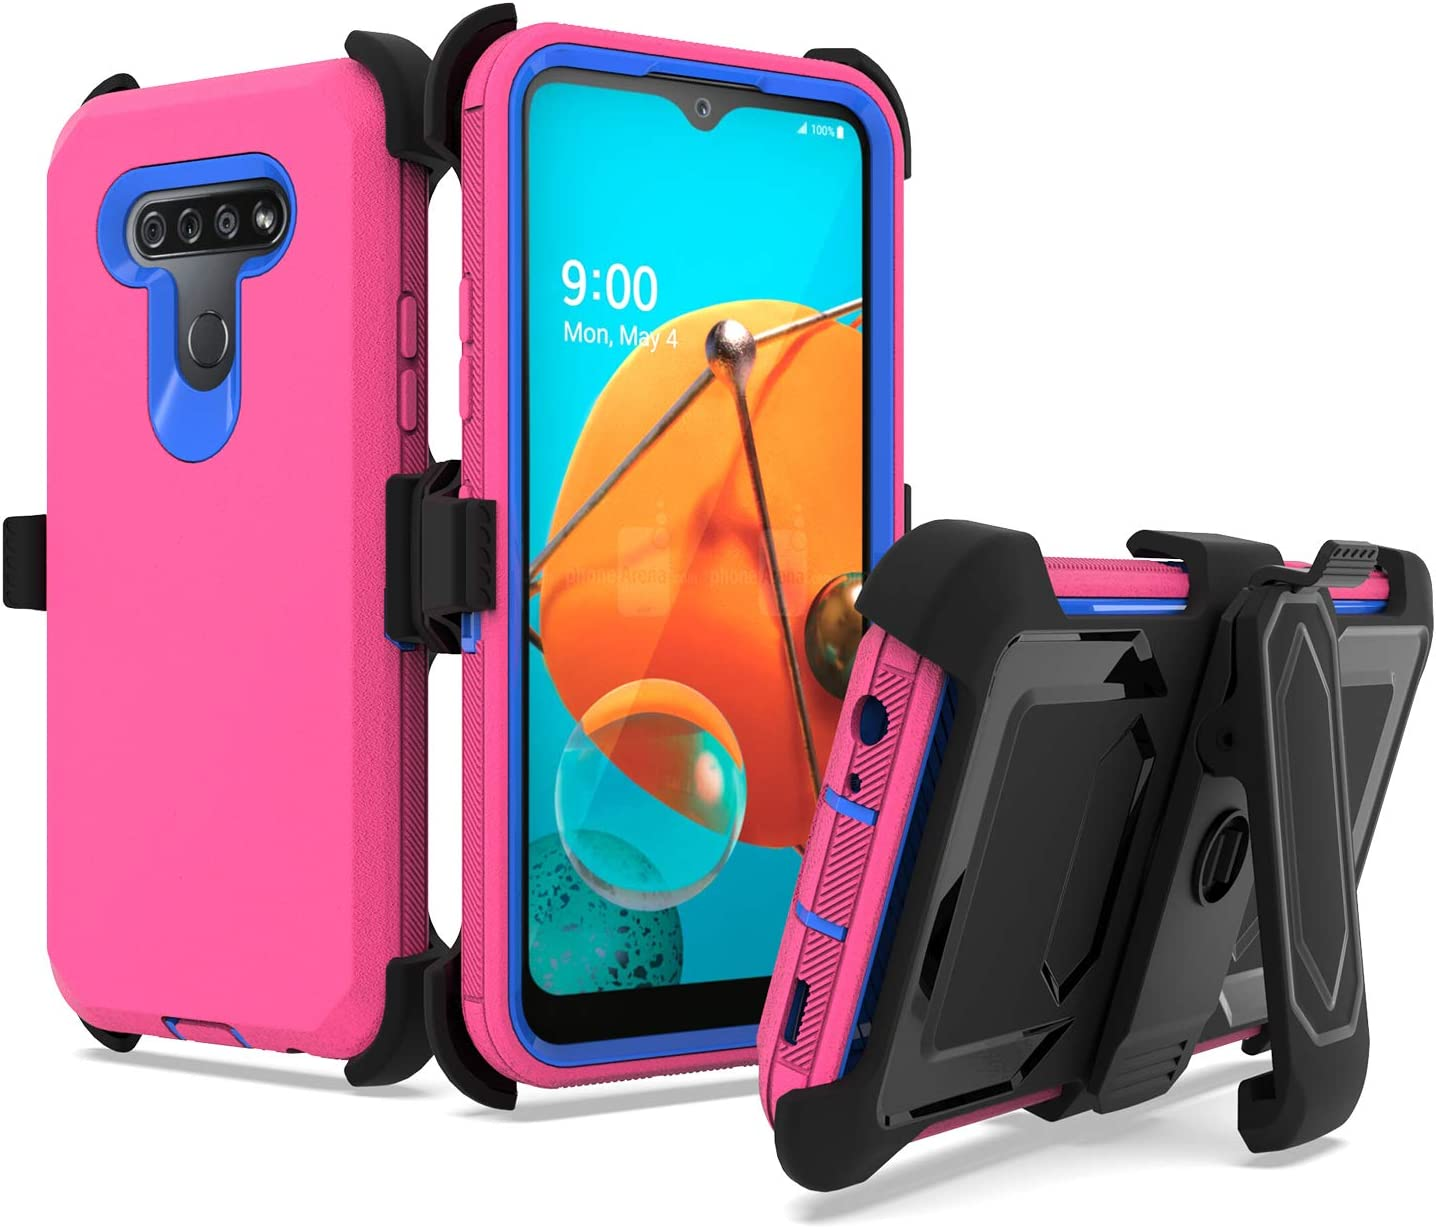 UNC Pro 3 in 1 Belt Clip Holster Cell Phone Case for LG K51/LG Q51/LG Reflect, Heavy Duty Hybrid Shockproof Bumper Case with Kickstand, Hot Pink/Blue